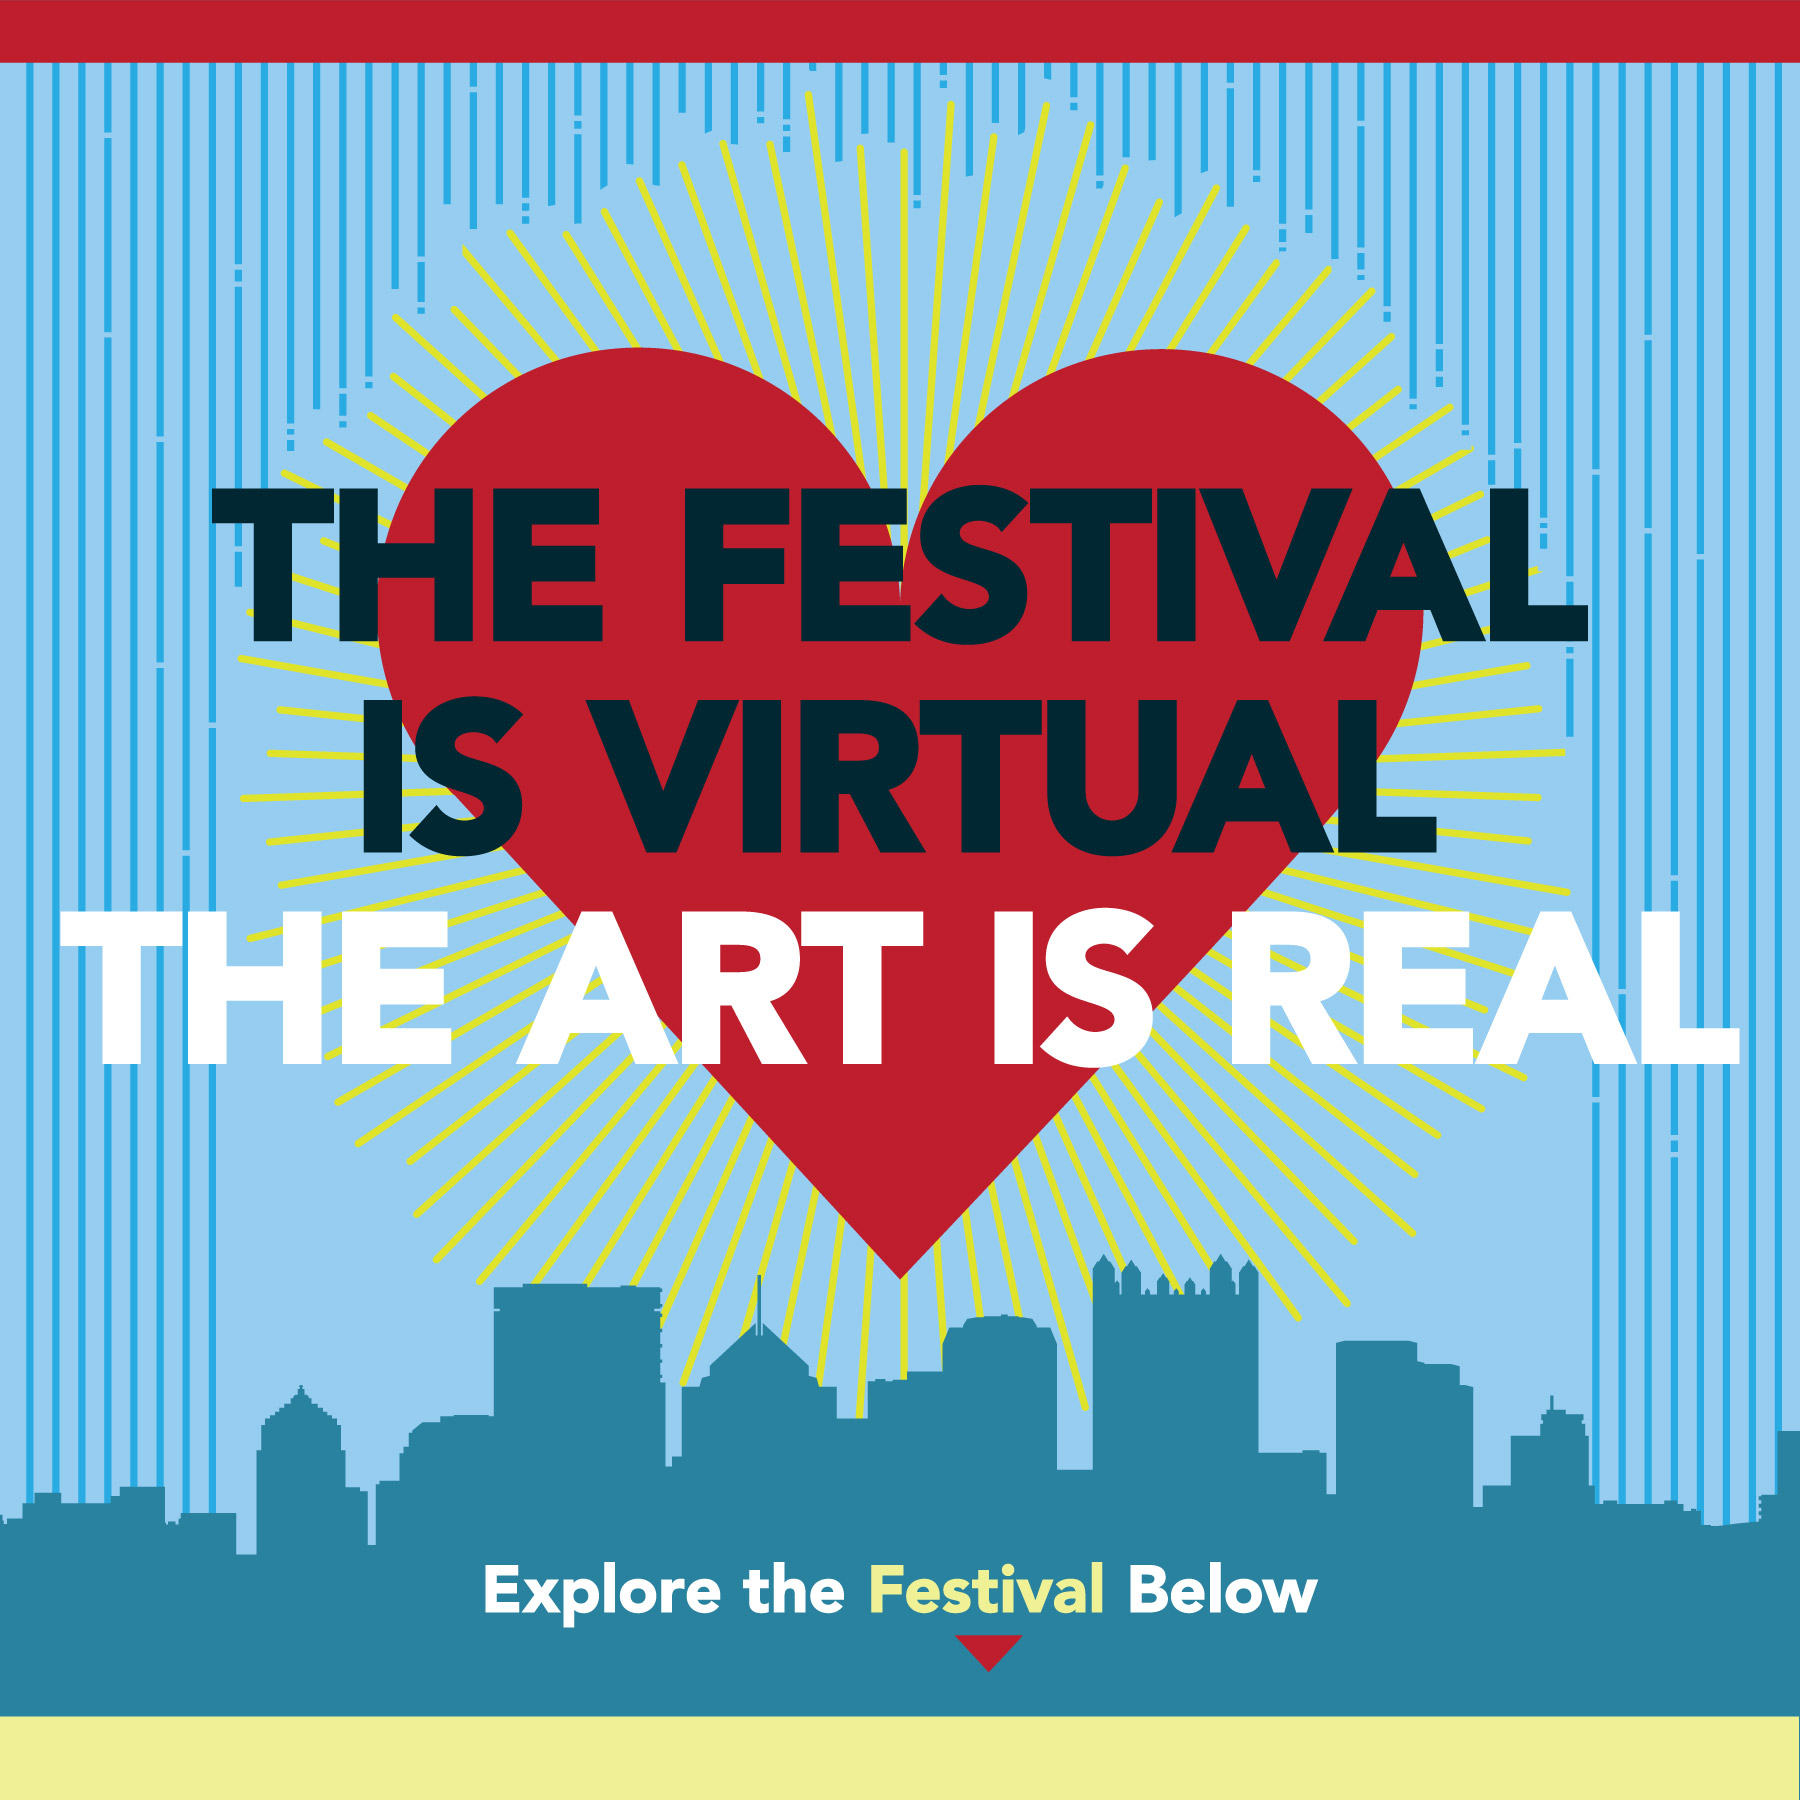 Text over a heart. The festival is virtual, the art is real. Scroll down to explore the festival.